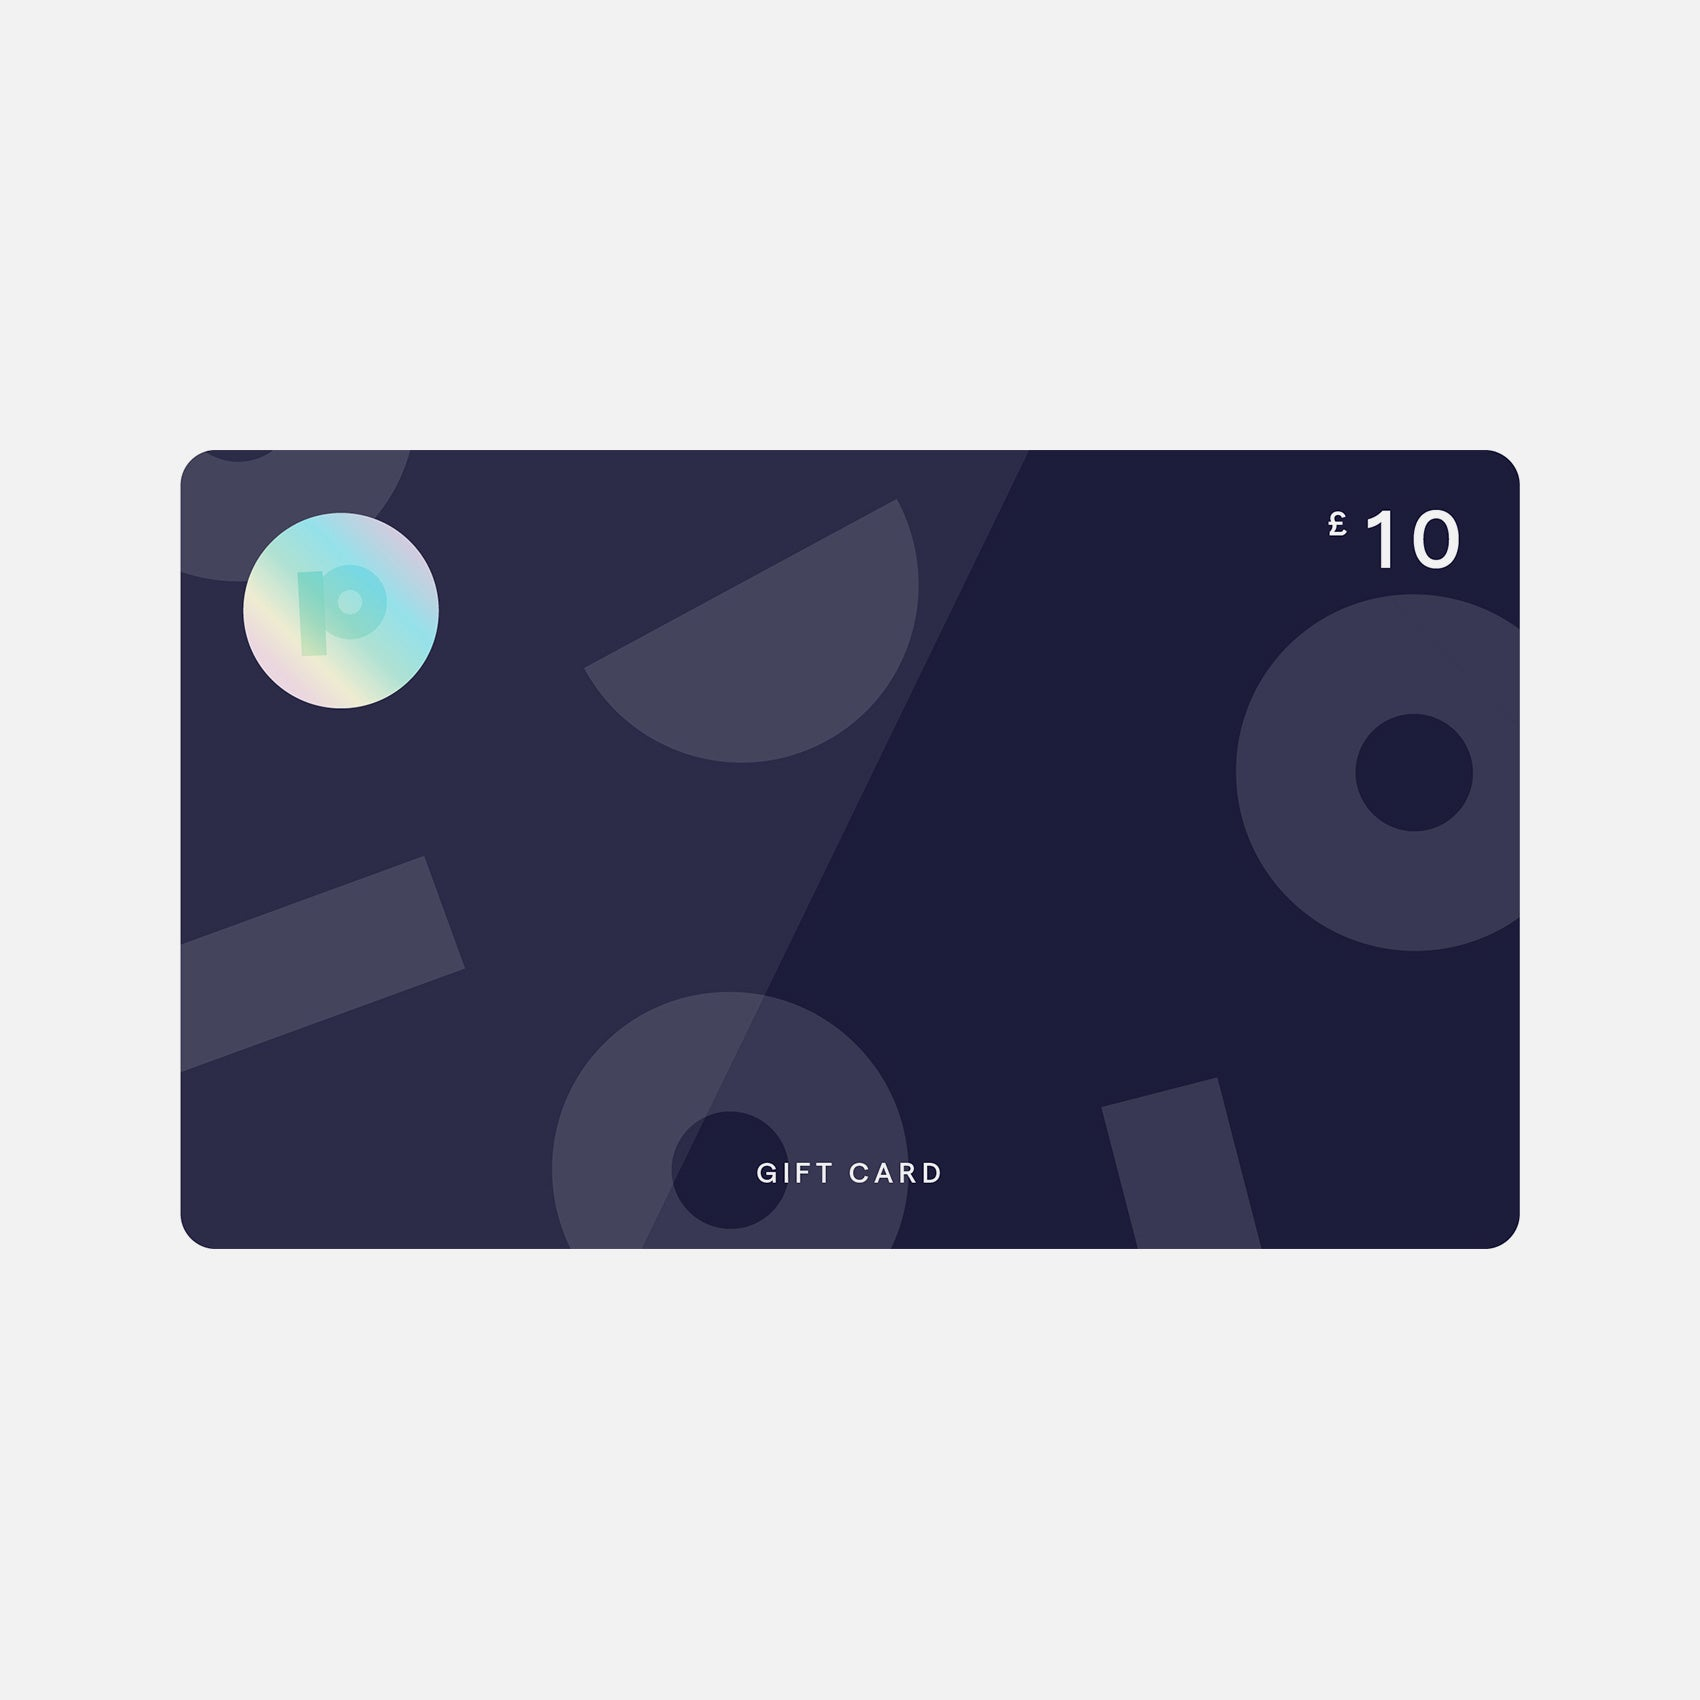 Gift card from Pea £10